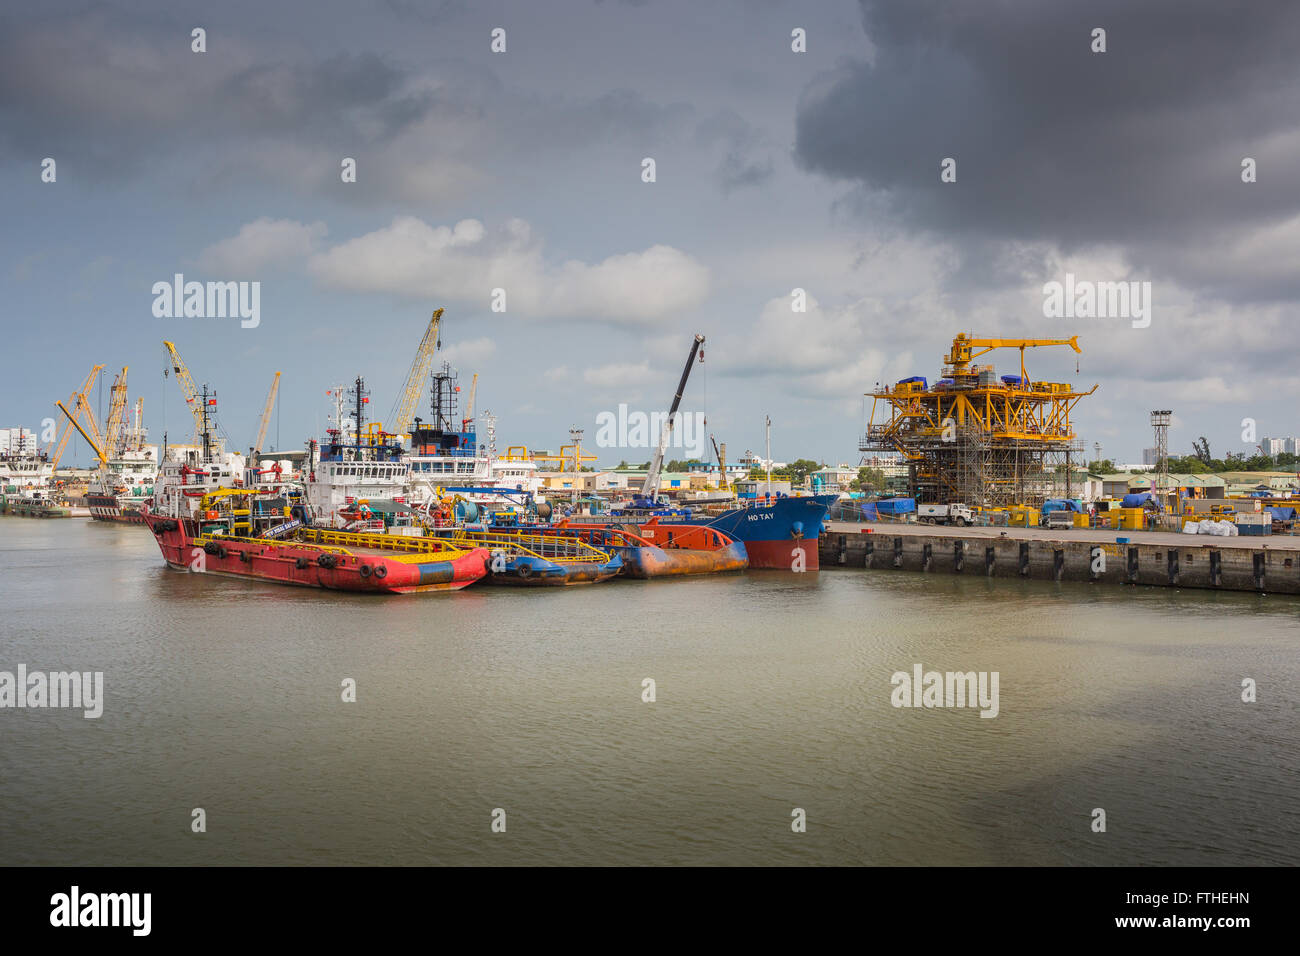 oil rig construction yard with assistance vessels stock photo